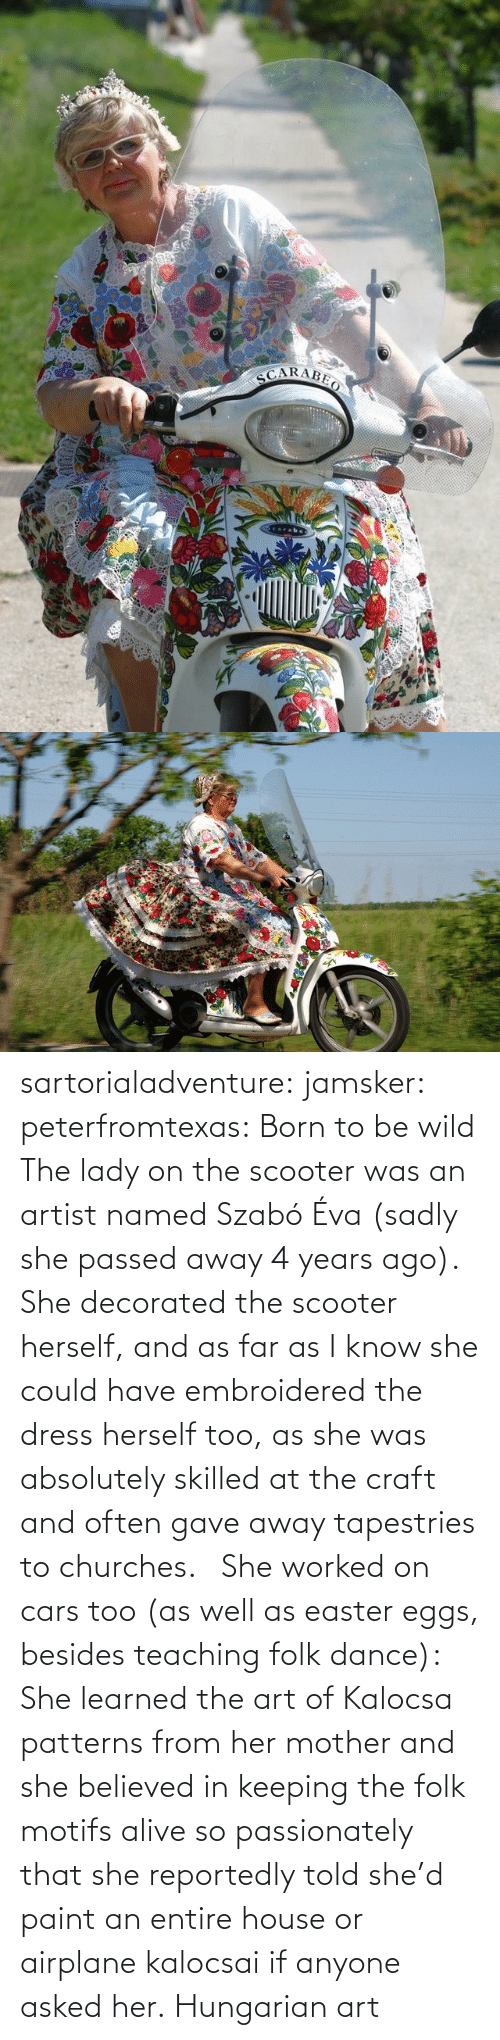 Image: sartorialadventure: jamsker:  peterfromtexas: Born to be wild The lady on the scooter was an artist named Szabó Éva (sadly she passed away 4 years ago). She decorated the scooter herself, and as far as I know she could have embroidered the dress herself too, as she was absolutely skilled at the craft and often gave away tapestries to churches.   She worked on cars too (as well as easter eggs, besides teaching folk dance): She learned the art of Kalocsa patterns from her mother and she believed in keeping the folk motifs alive so passionately that she reportedly told she'd paint an entire house or airplane kalocsai if anyone asked her.  Hungarian art